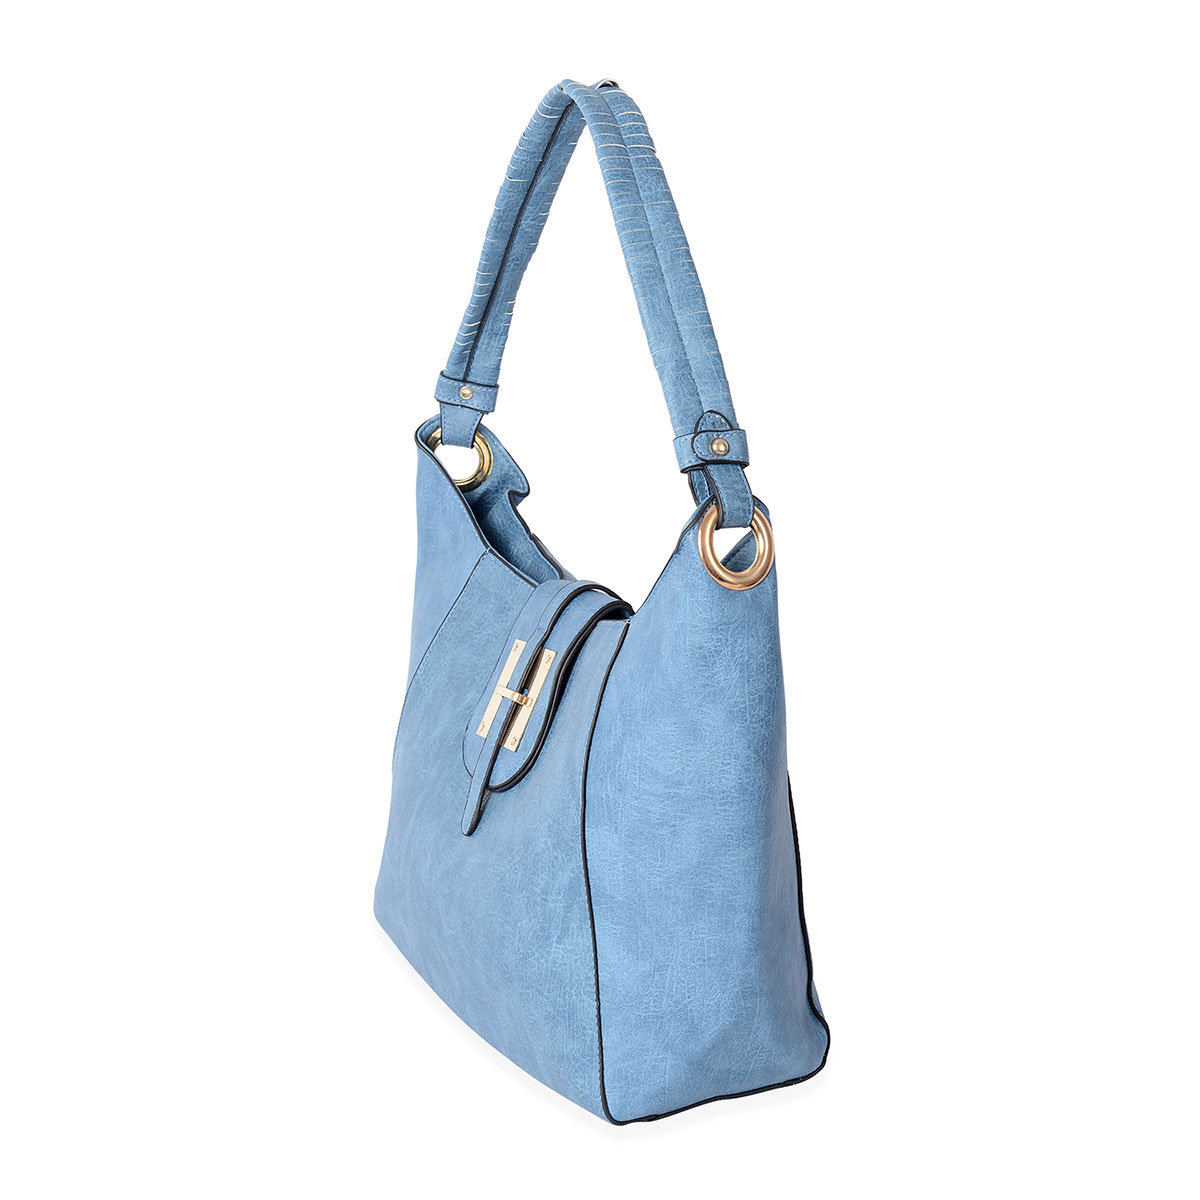 Blue Faux Leather Hobo Bag with Magnetic Belt Lock and Top Zipper Closure  (13 3x3 5x11 5 in)